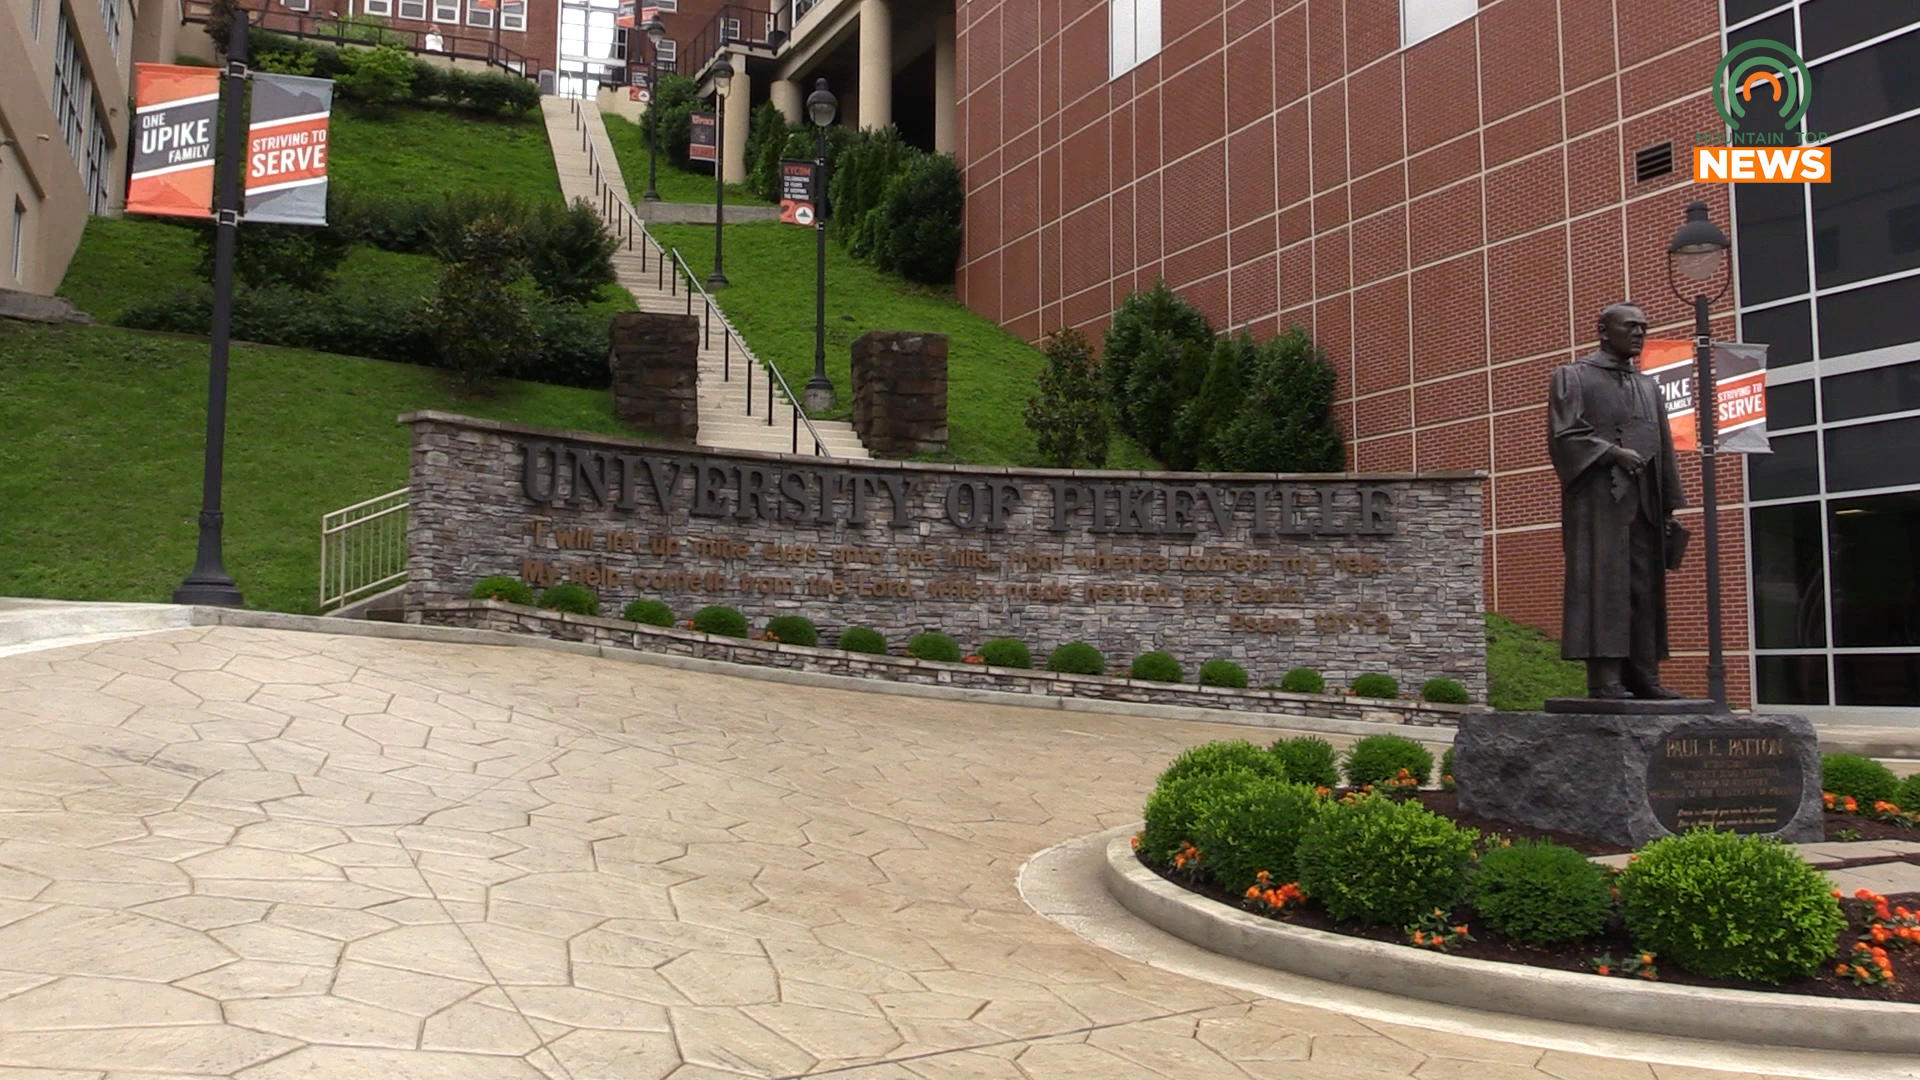 UPike transitioning to remote learning sooner than planned